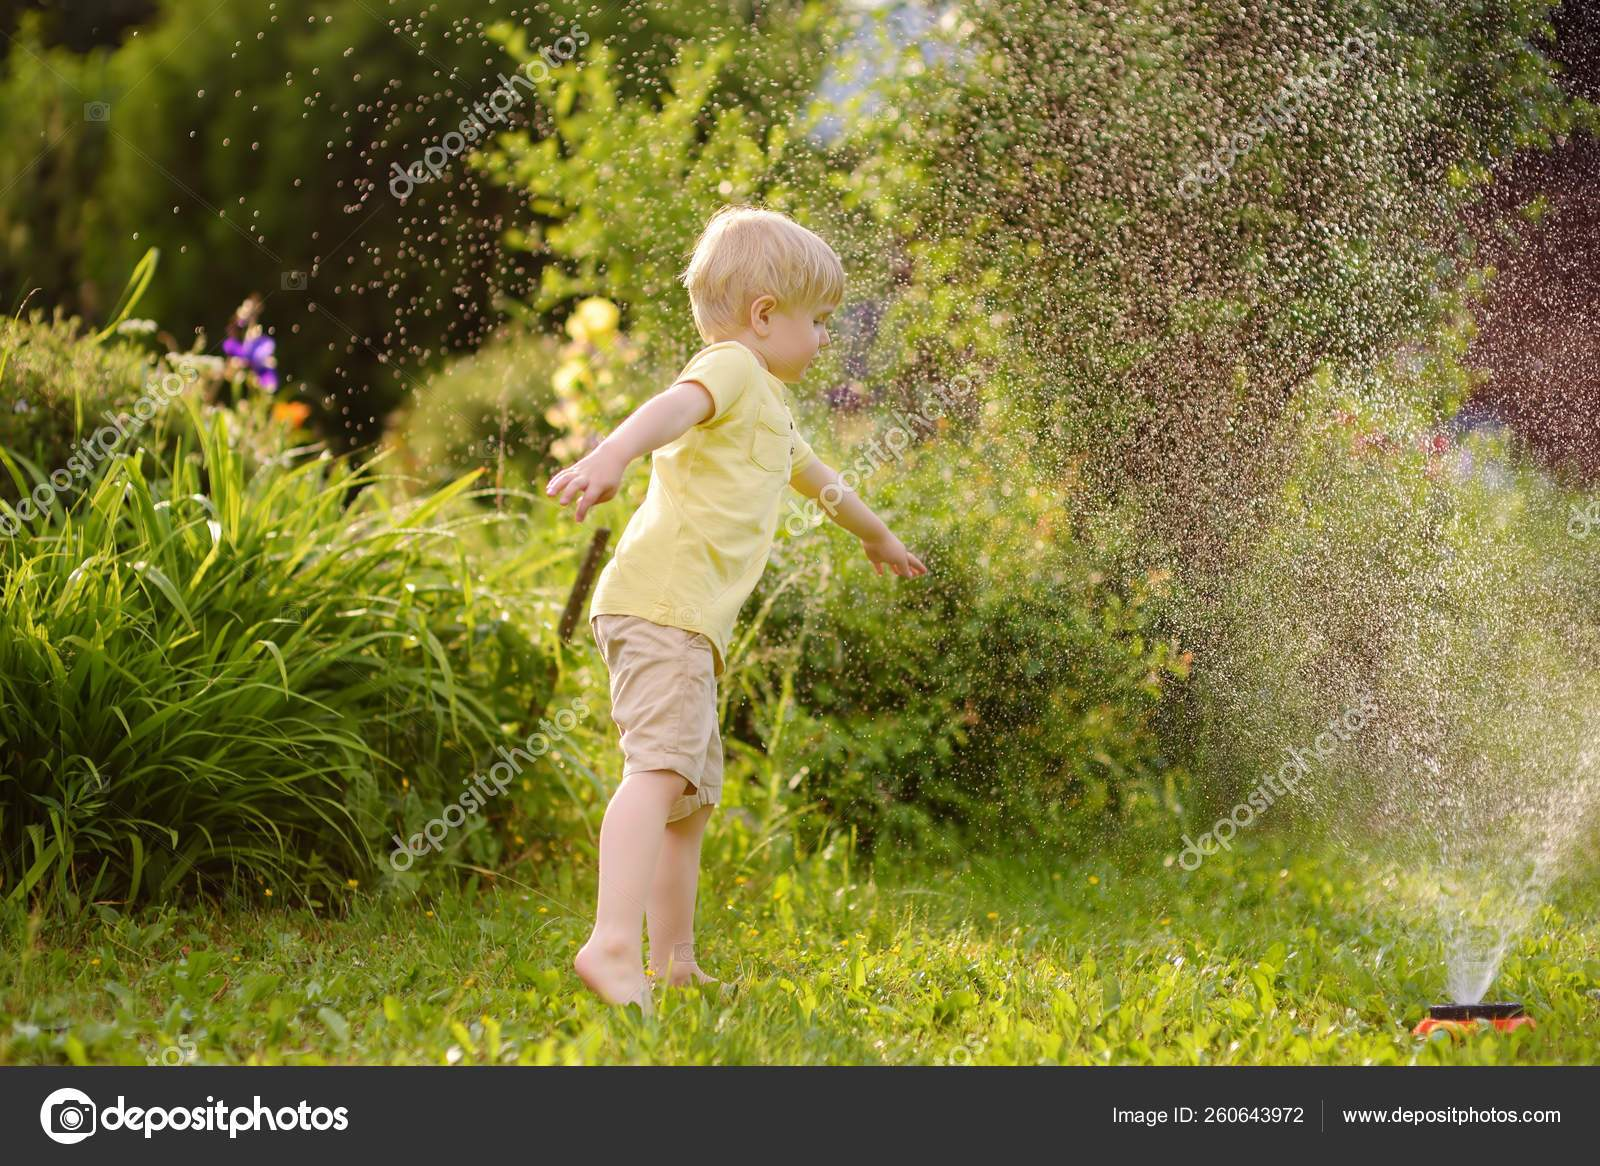 depositphotos stock photo funny little boy playing with